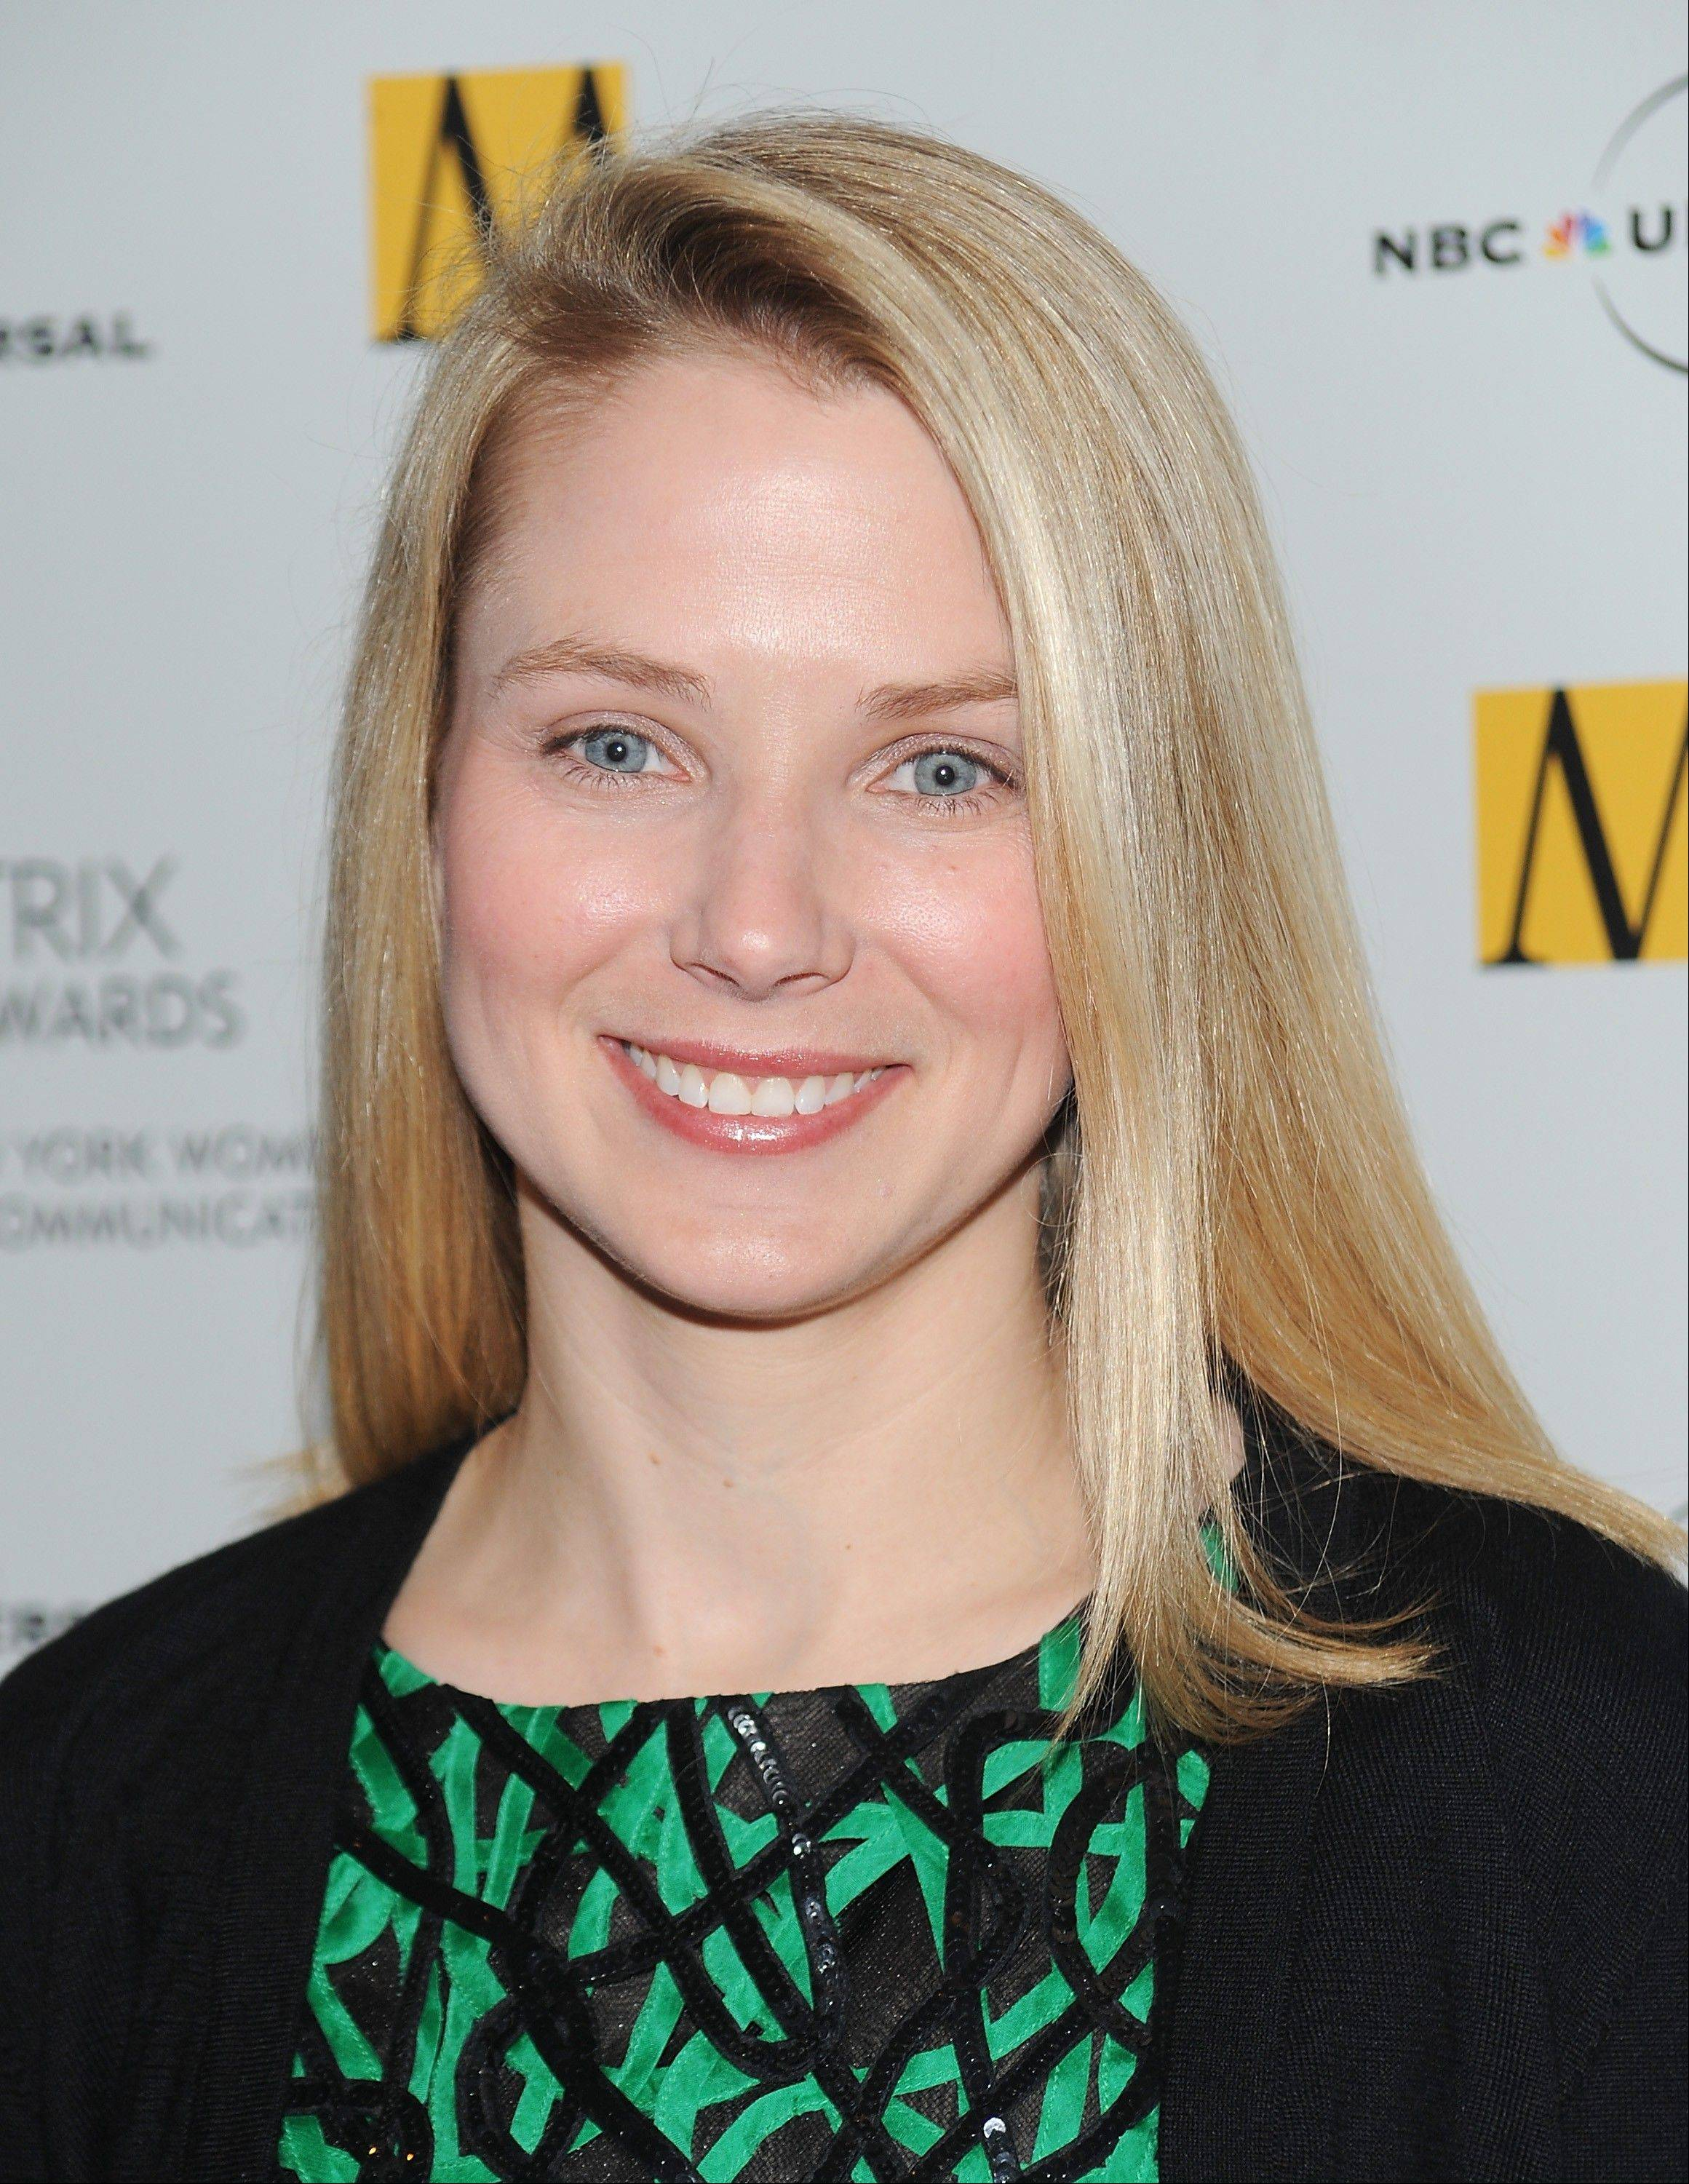 Marissa Mayer, Google vice president of search products and user experience, attends the 2010 Matrix Awards presented by the New York Women in Communications in New York. Yahoo on Tuesday announced closing a $7.6 billion deal that includes selling half its stake in rapidly growing Chinese company Alibaba Group.